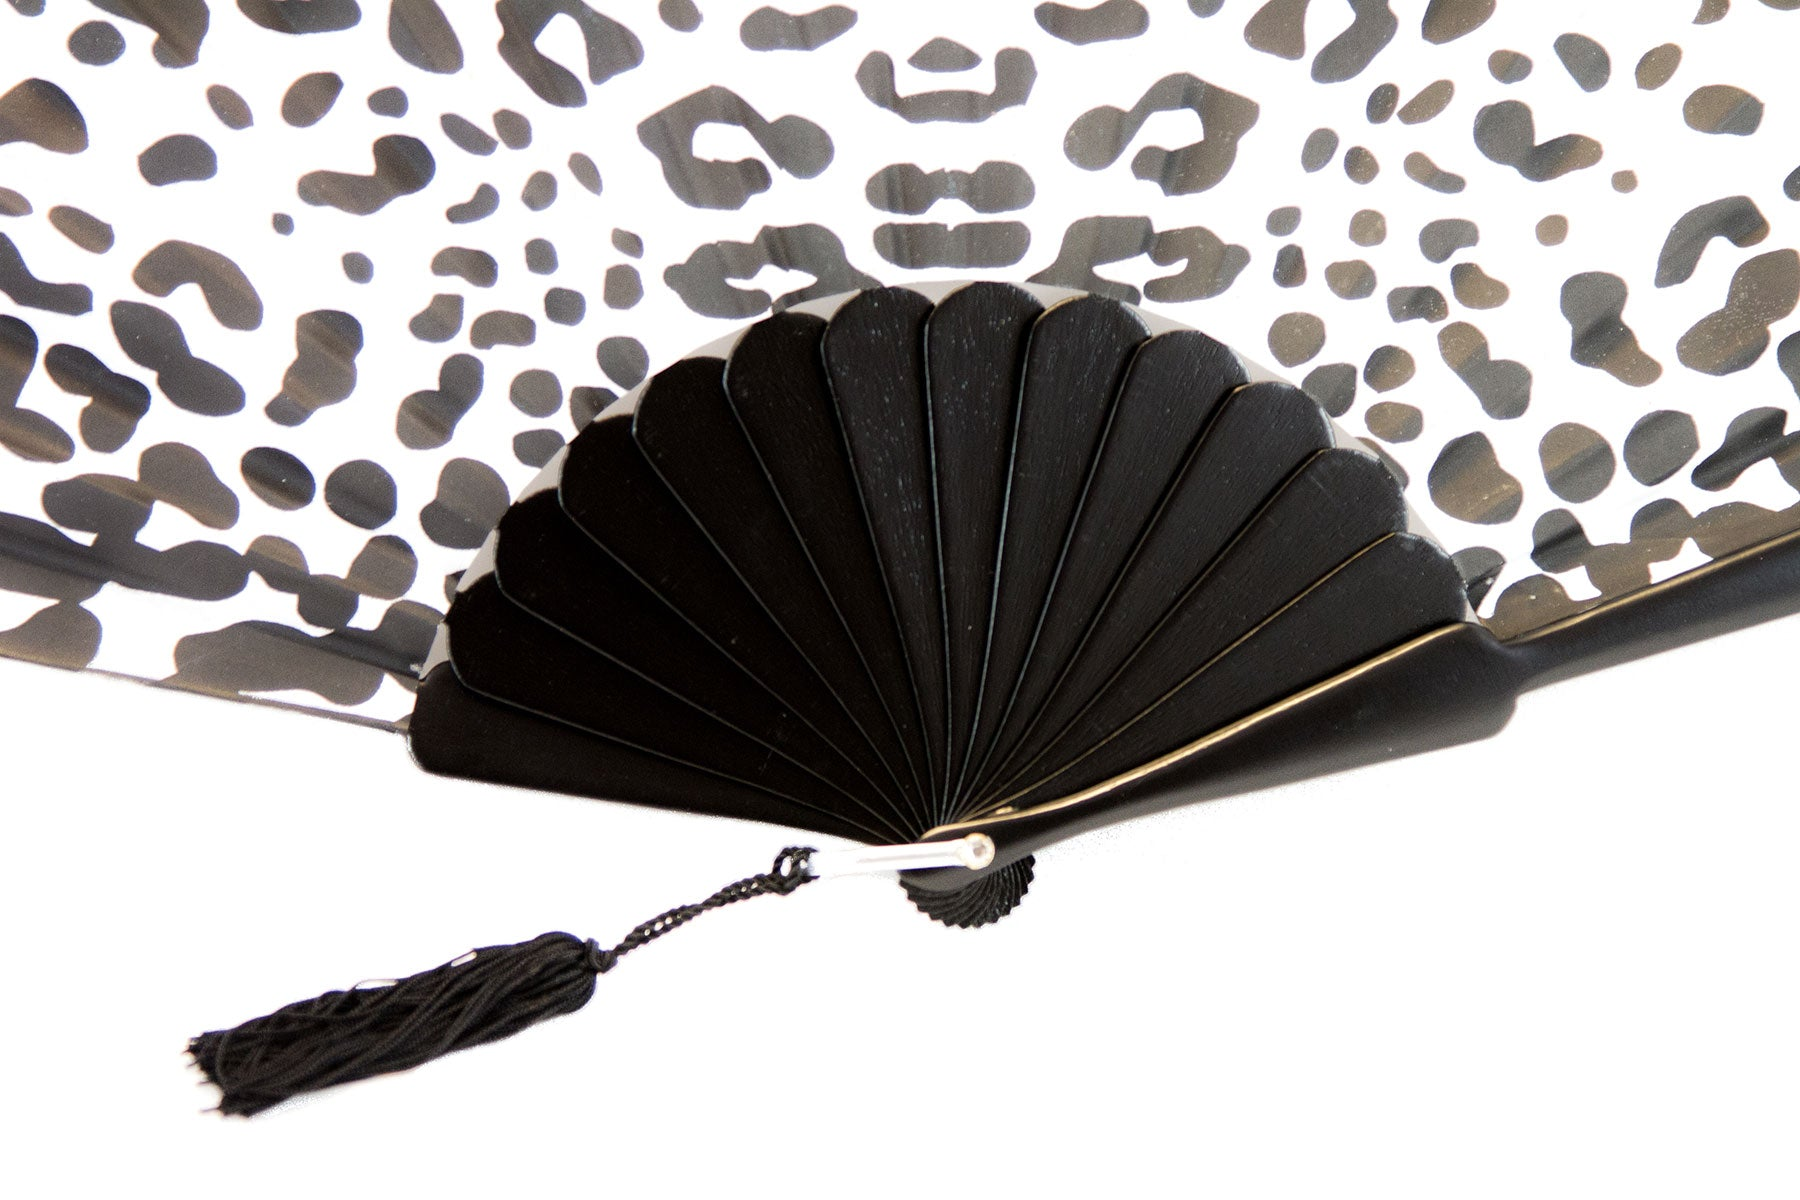 On trend handmade black and white safari print luxury hand fan detail